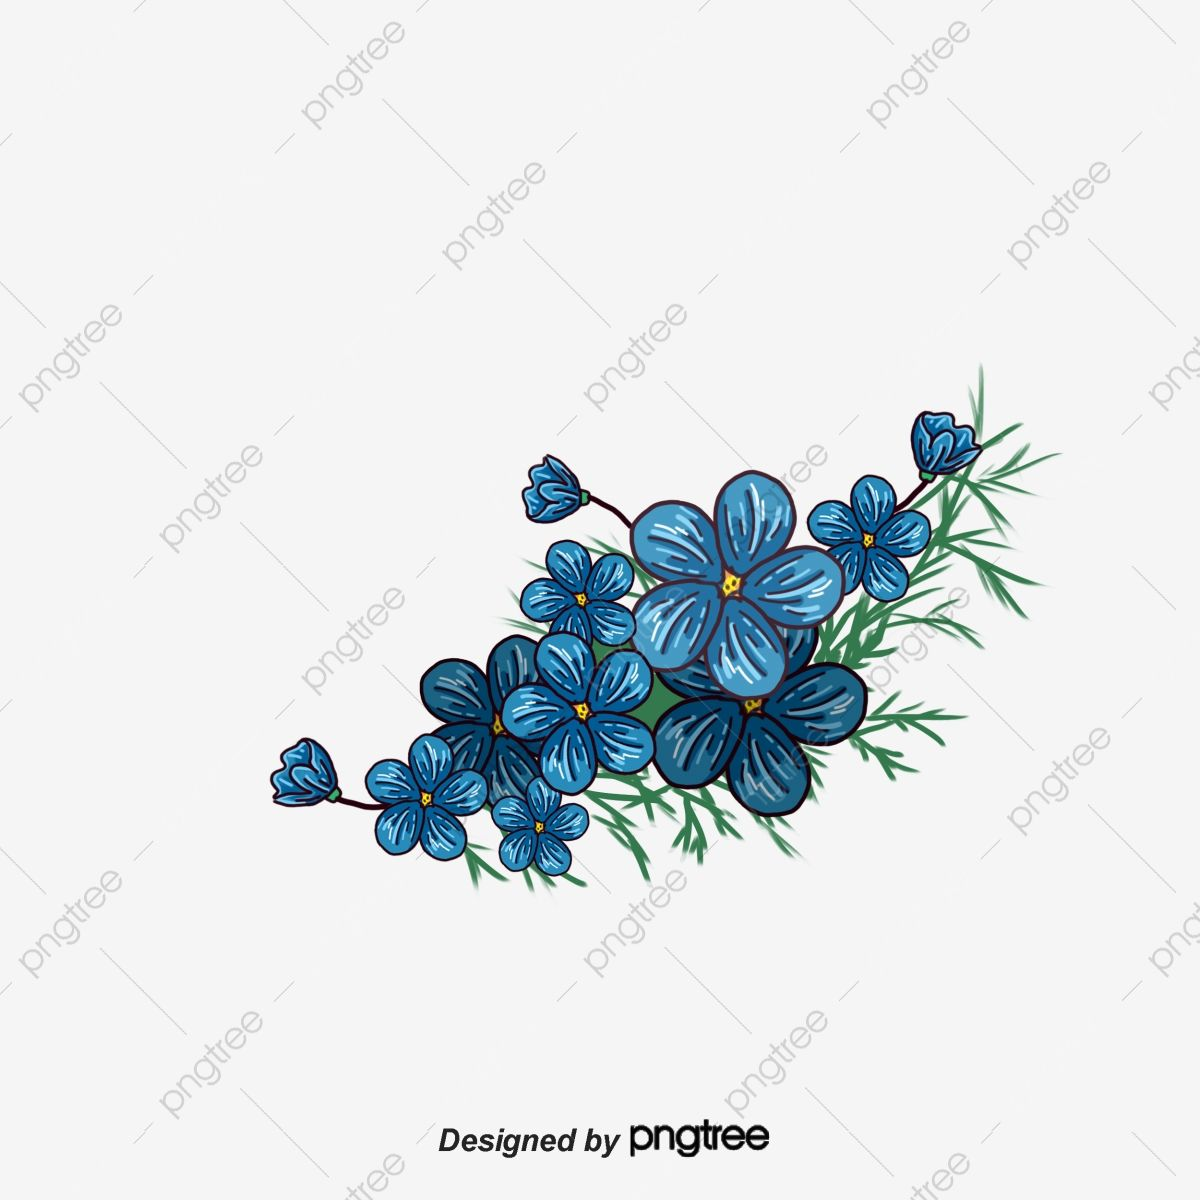 Discover The Coolest Flowercrown Flowers Flores Crown Corona Iloveflowers Watercolor Lovewate Blue Flower Painting Flower Crown Drawing Blue Flower Png